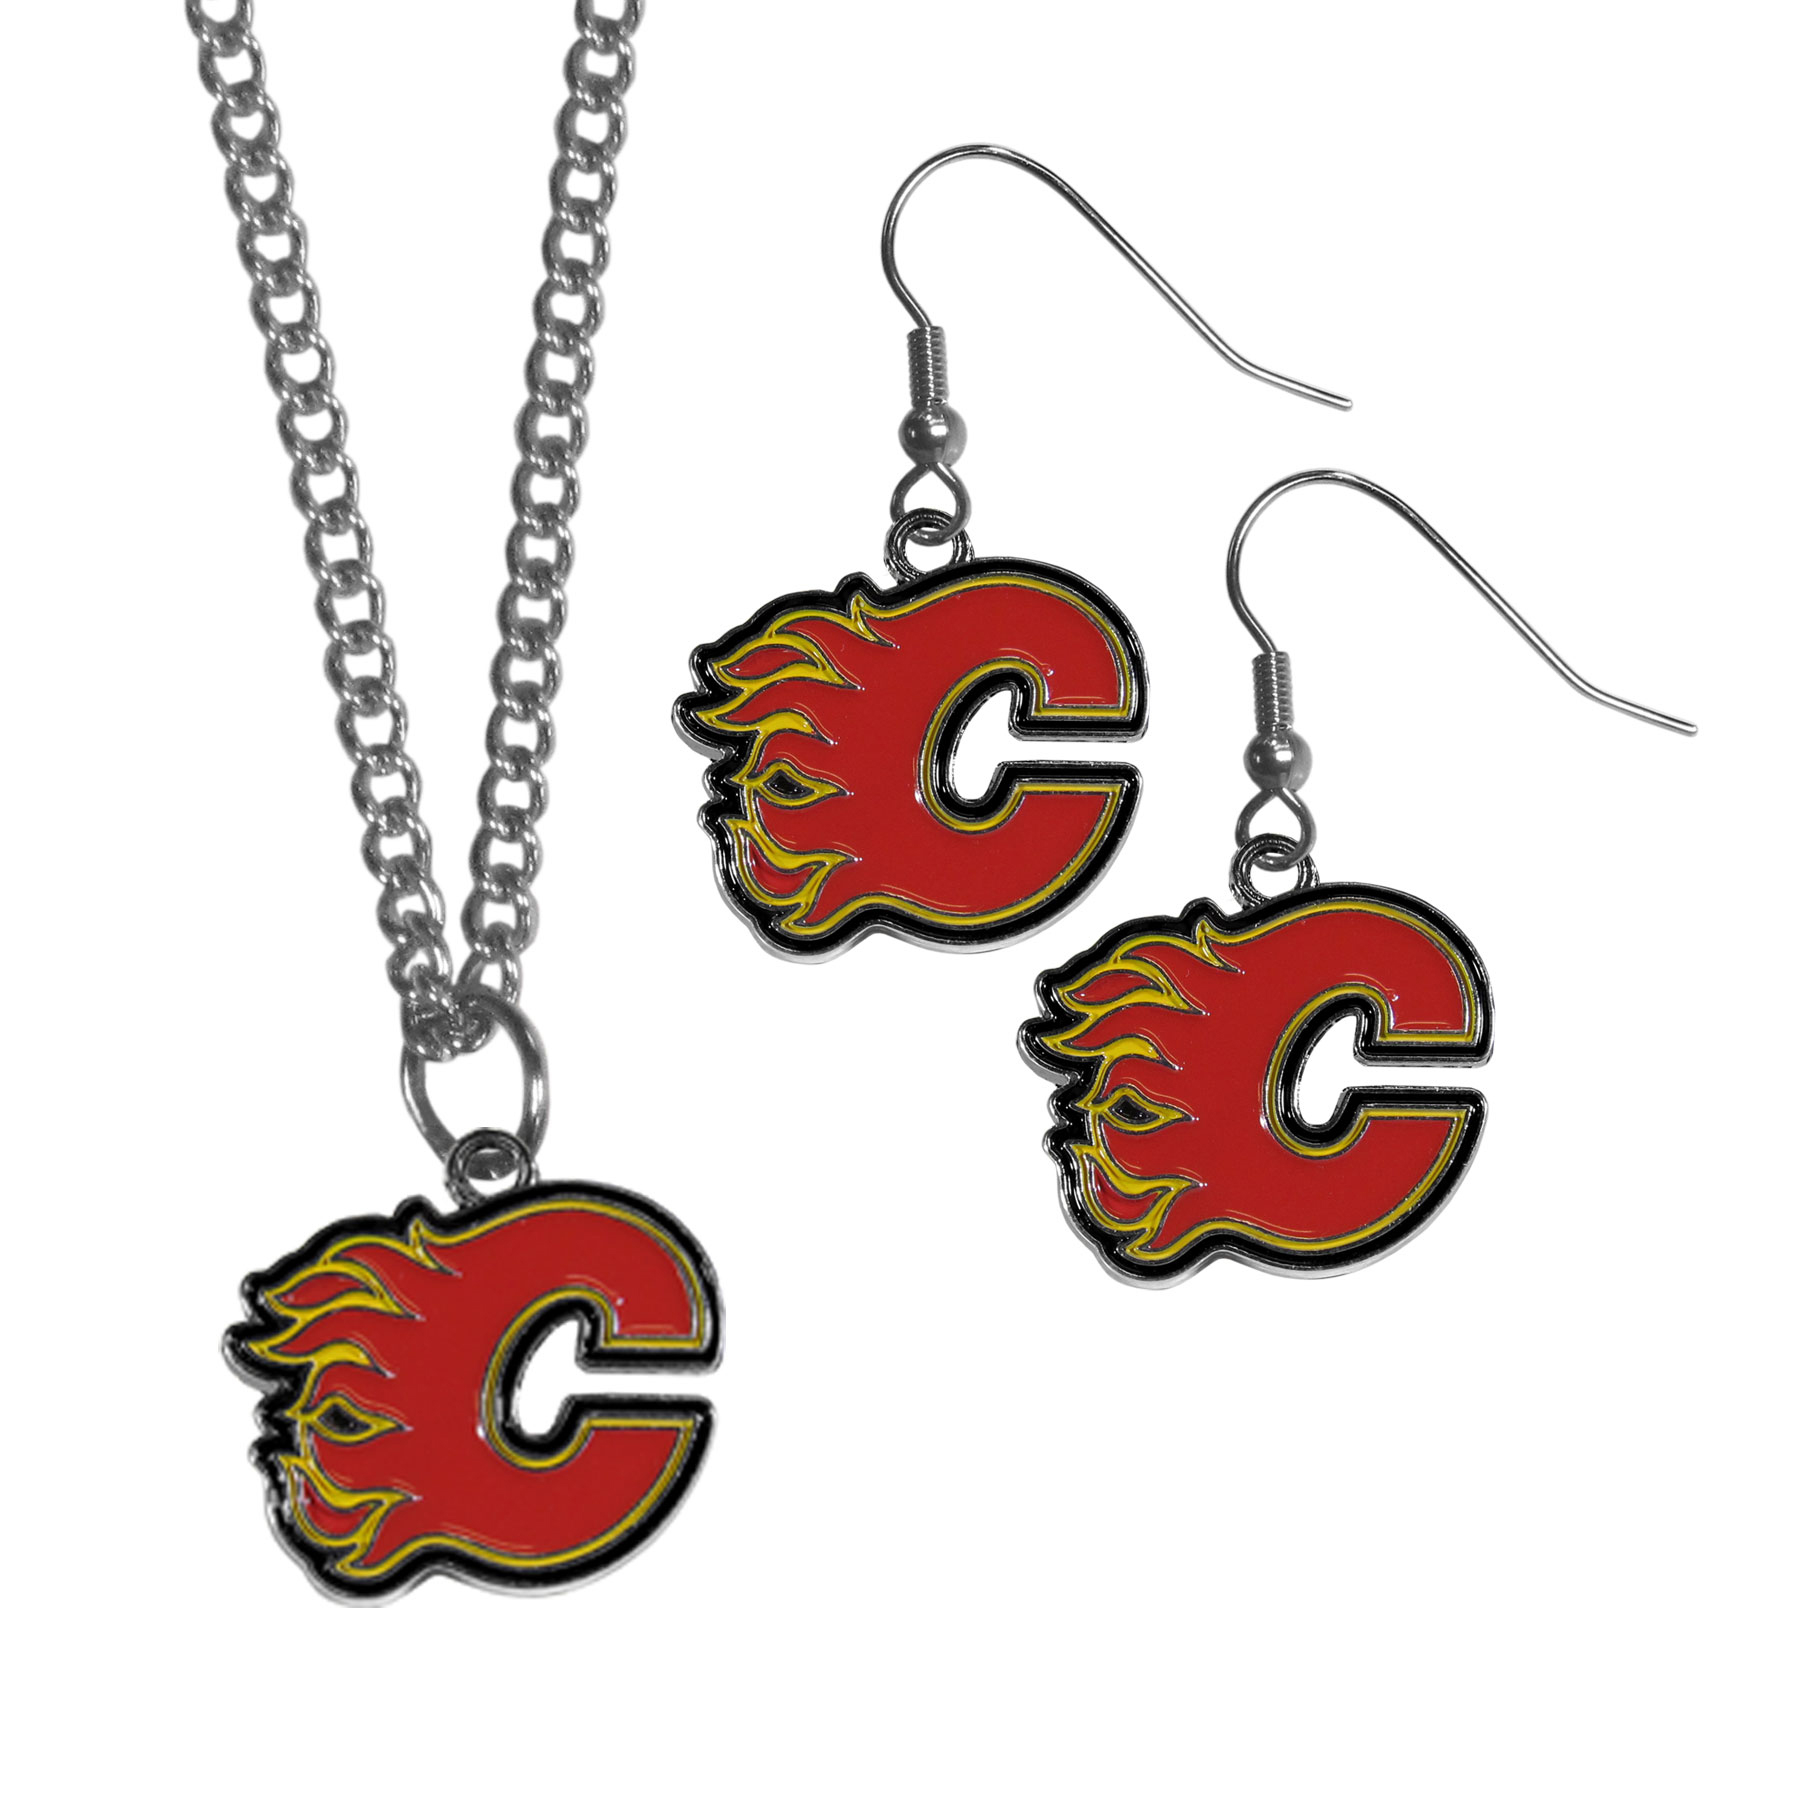 Calgary Flames® Dangle Earrings and Chain Necklace Set - This classic jewelry set contains are most popular Calgary Flames® dangle earrings and 22 inch chain necklace. The trendy, dangle earrings are lightweight and feature a fully cast metal team charm with enameled team colors. The matching necklace completes this fashion forward combo and is a spirited set that is perfect for game day but nice enough for everyday.